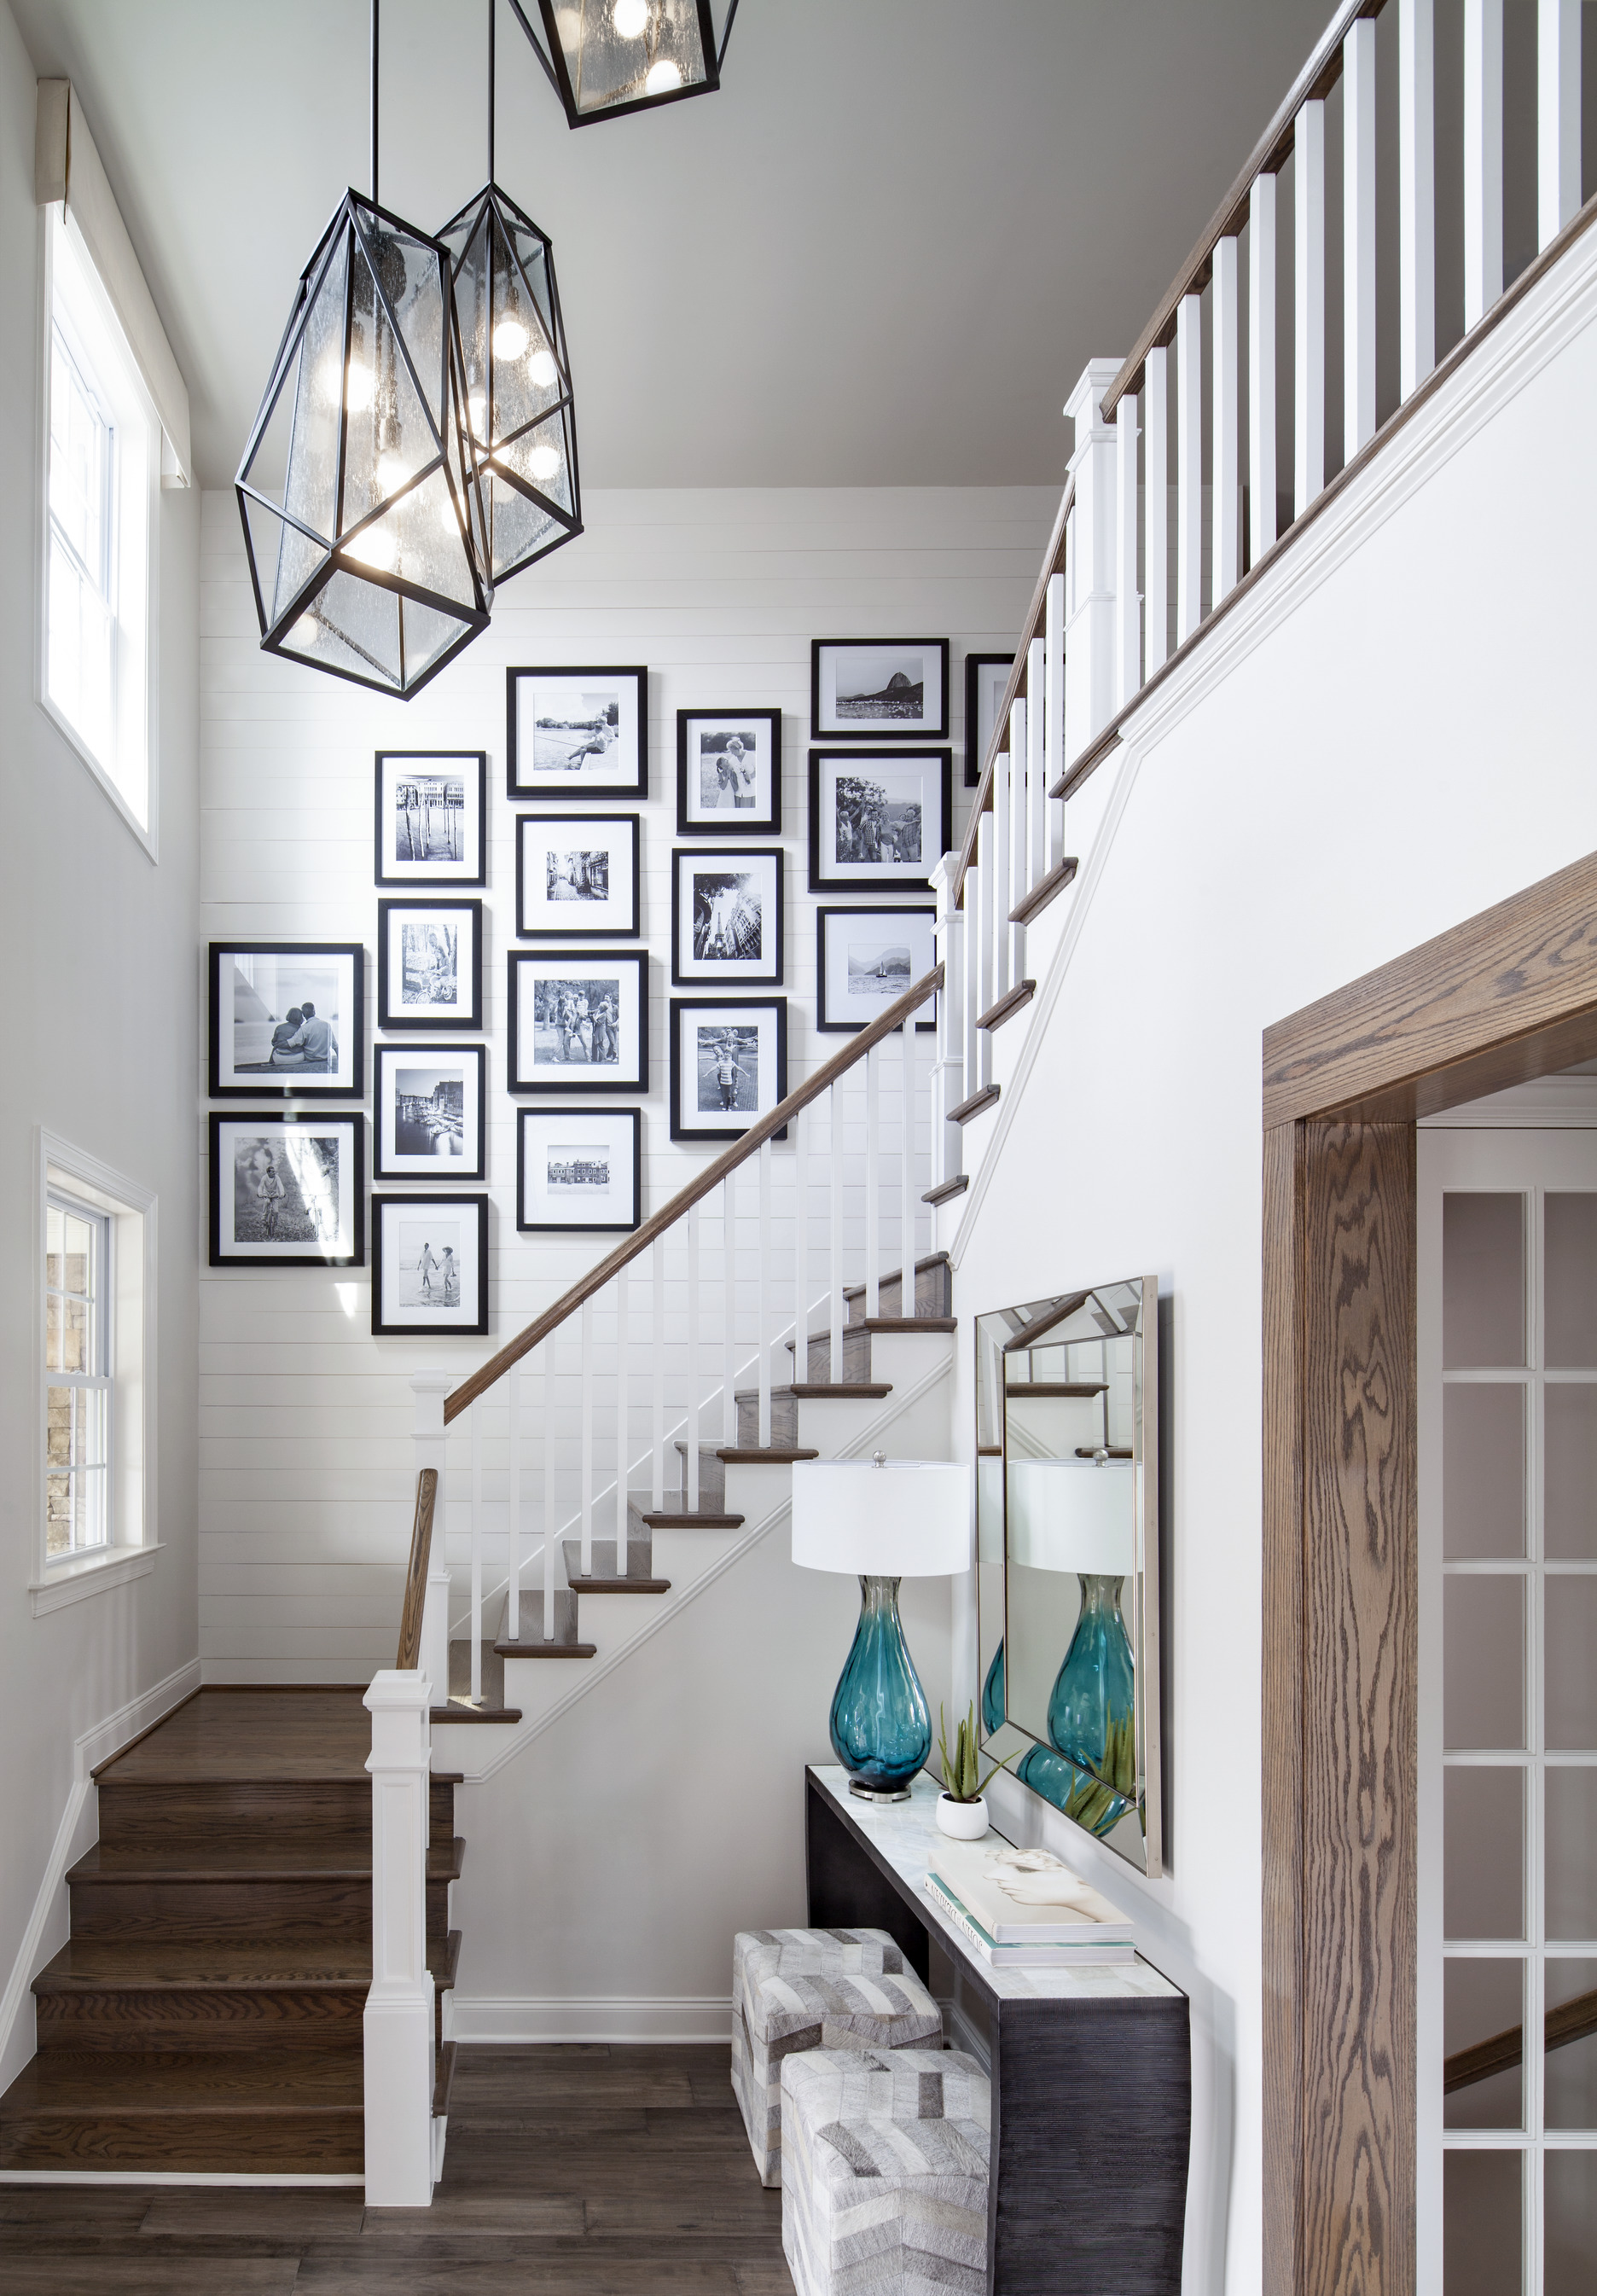 Foyer area staircase with striking pendant lighting fixtures and a collage of picture frames on the wall